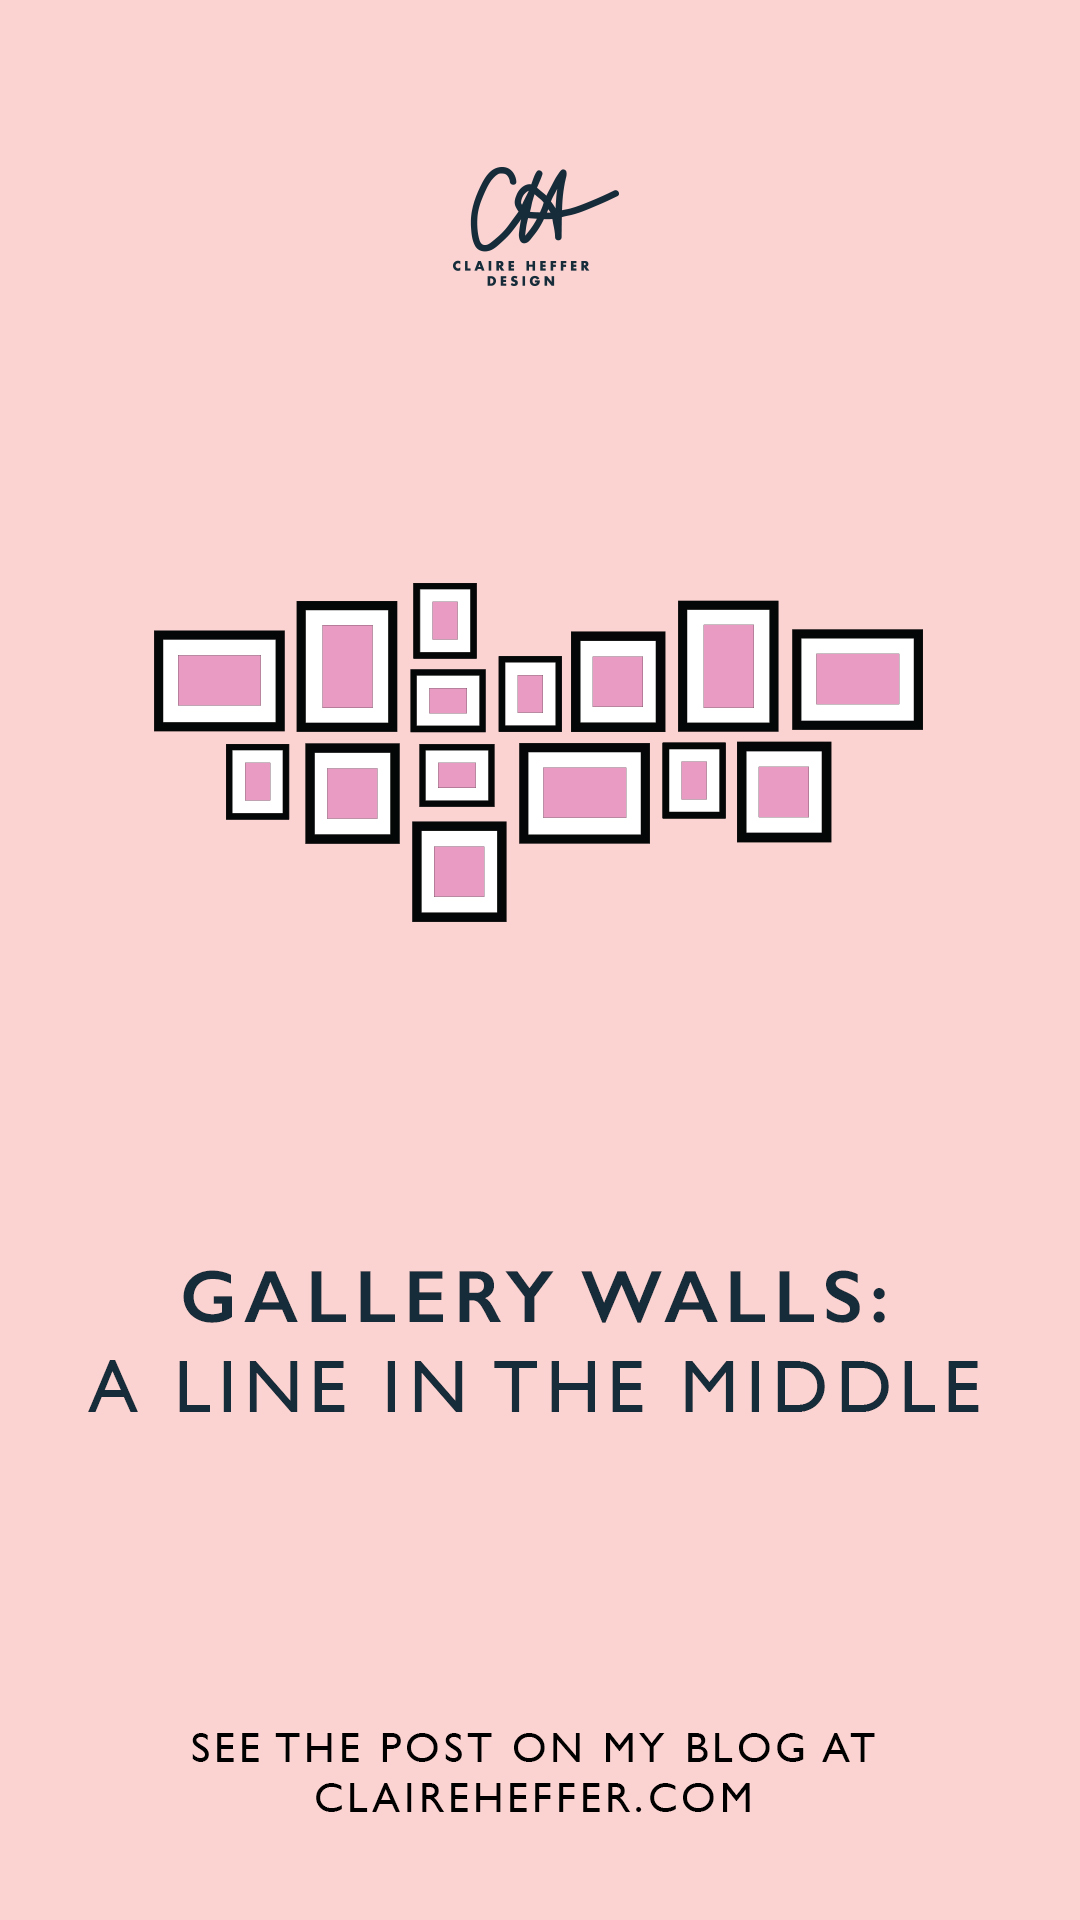 GALLERY WALLS A LINE IN THE MIDDLE.jpg